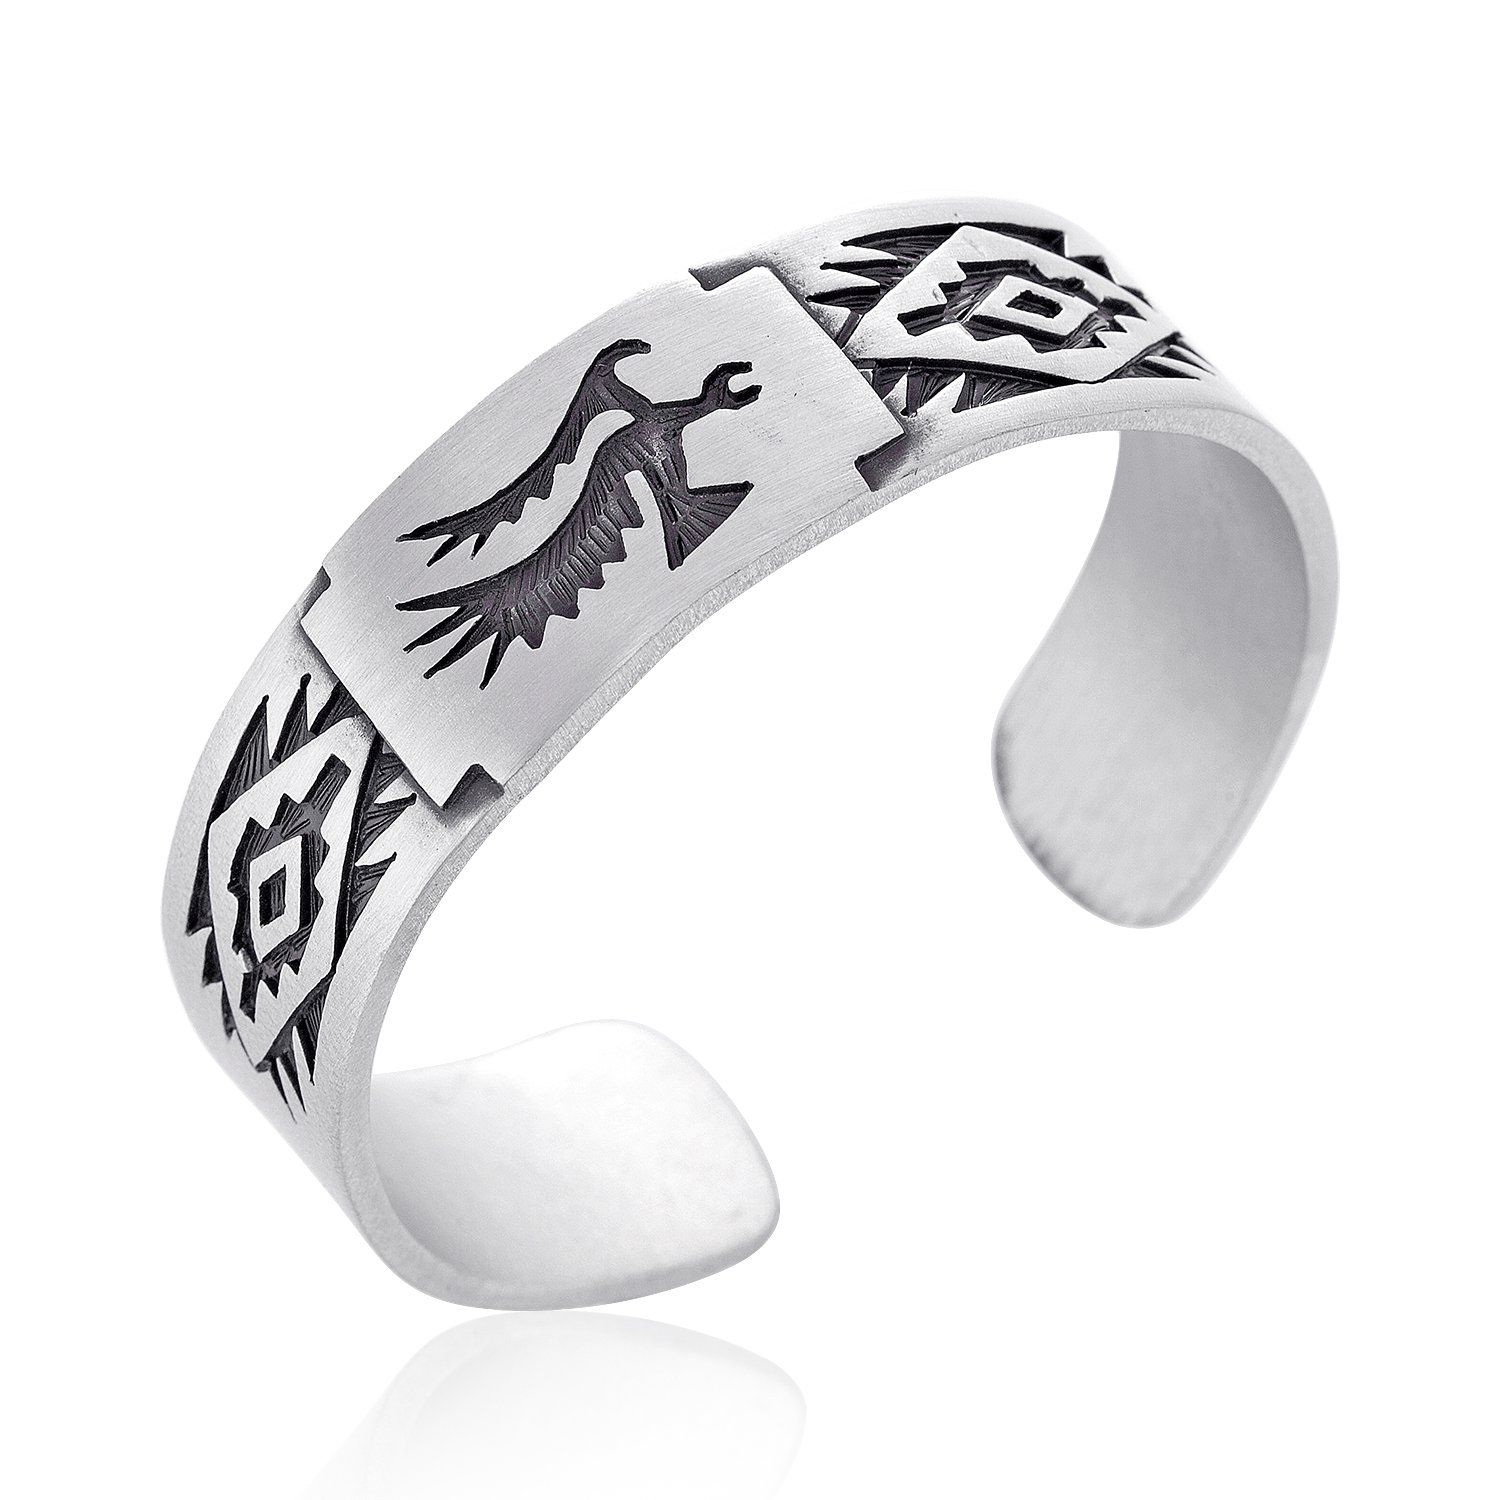 Dan's Jewelers Native American Indian Style Phoenix Bracelet, Fine Pewter Jewelry